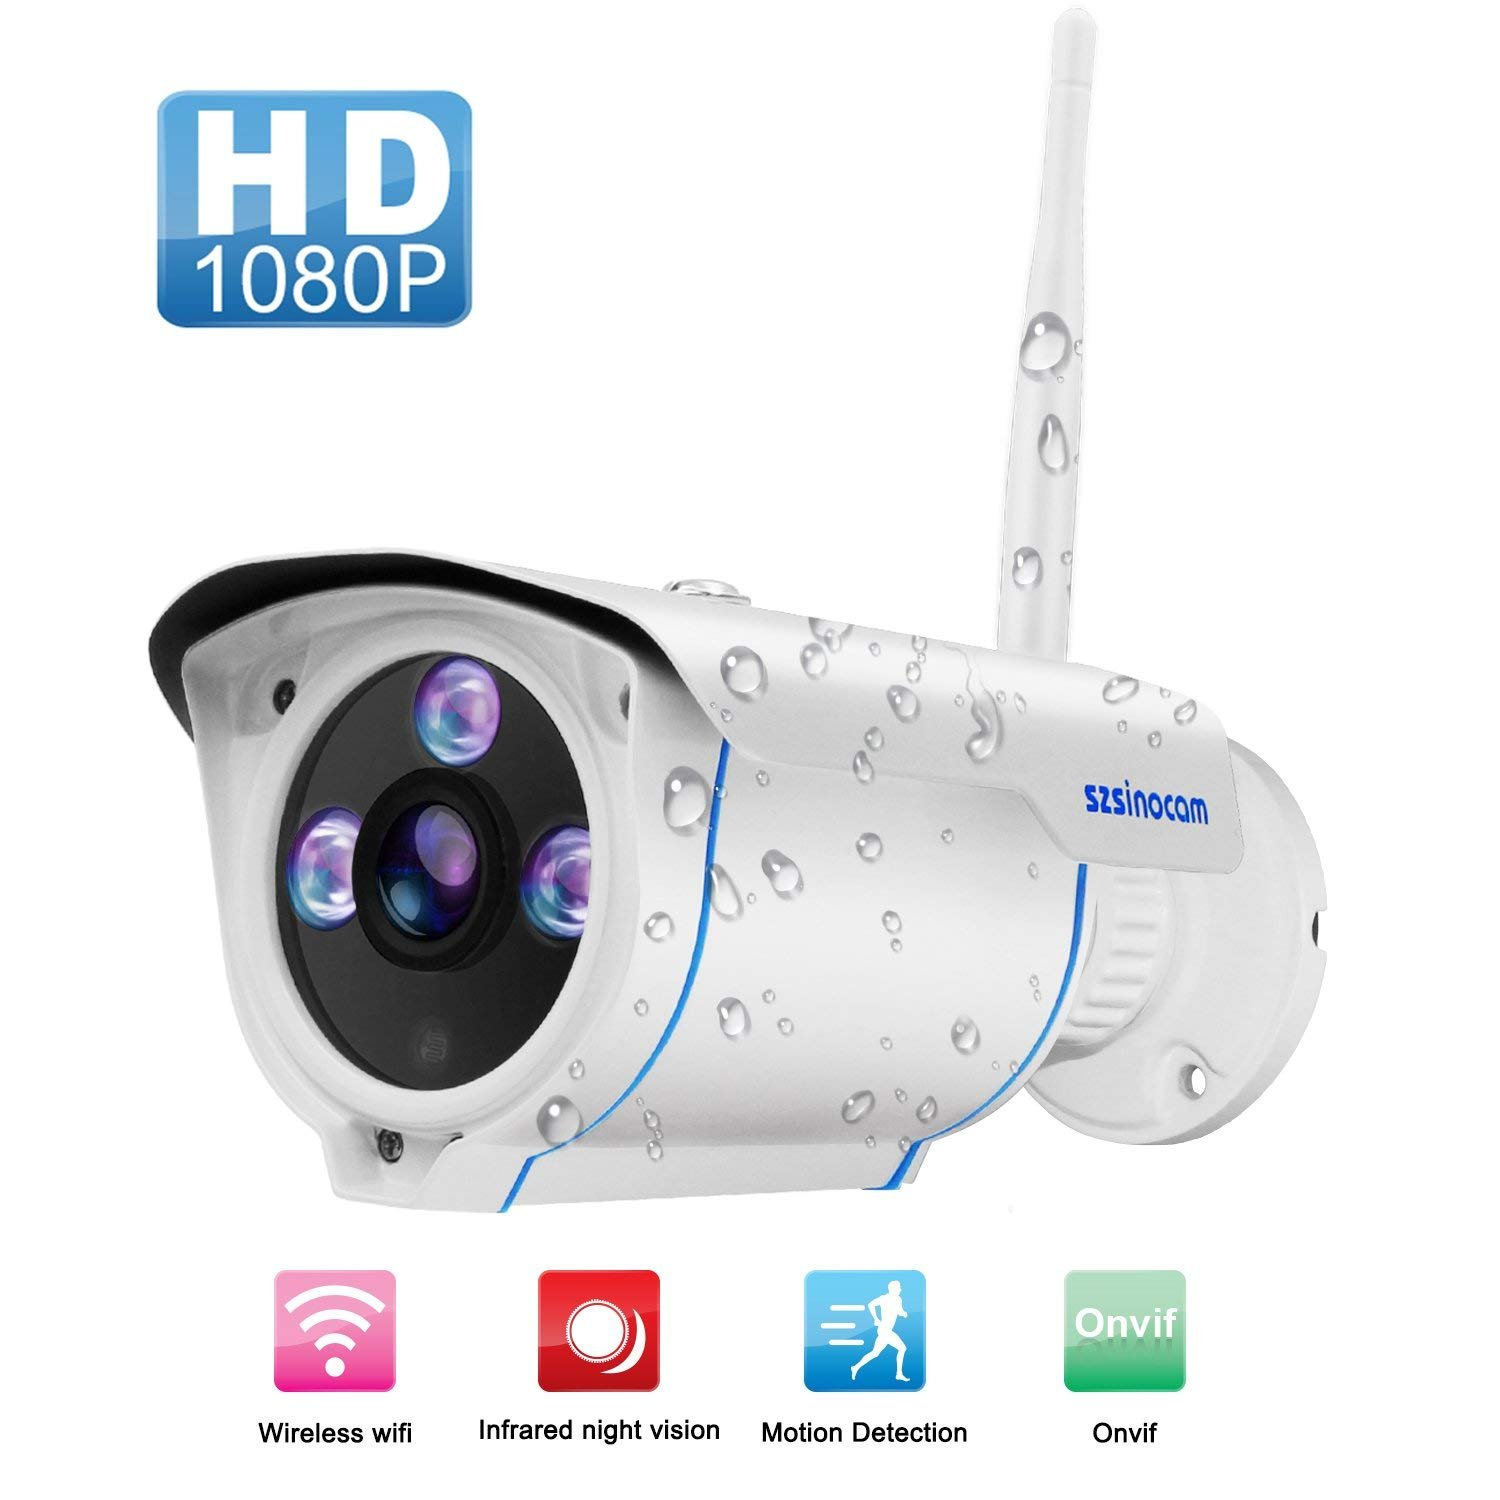 WIFI Camera Outdoor,SZSINOCAM Wireless Security Camera, Waterproof Surveillance CCTV Camera FHD 1080P Night Vision Bullet Cameras With Advanced chips Onvif Motion Detection IP Cameras Baby Monitor